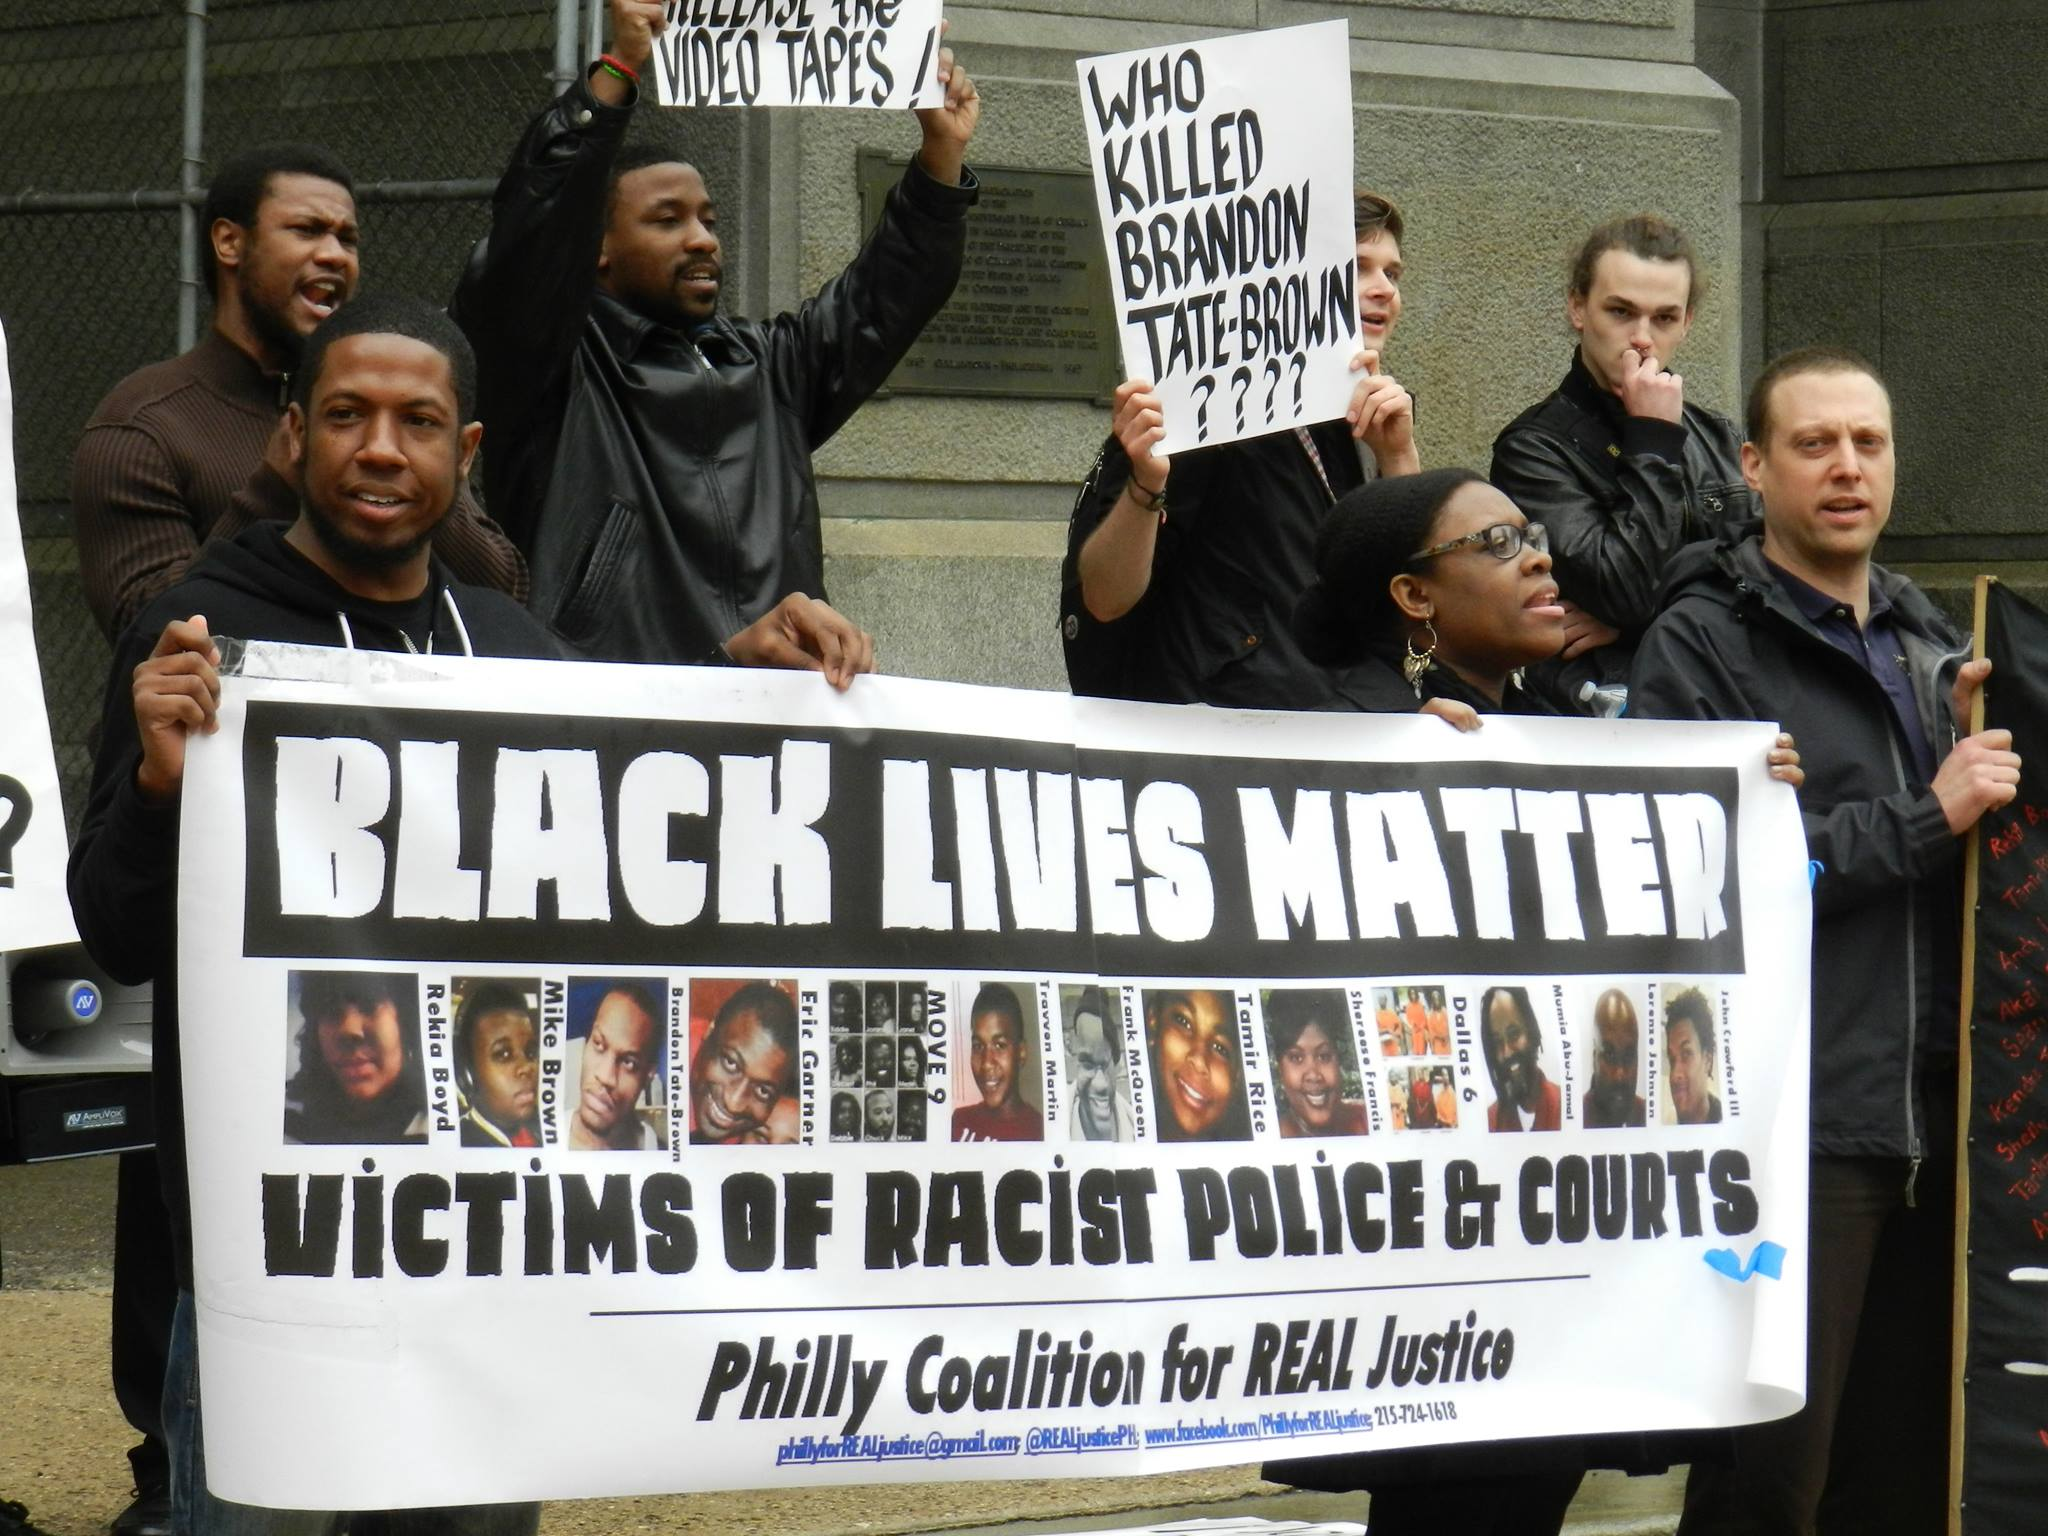 """Photo from Coalition for REAL Justice protest. A banner that reads """"Black Lives Matter"""" is at the forefront."""